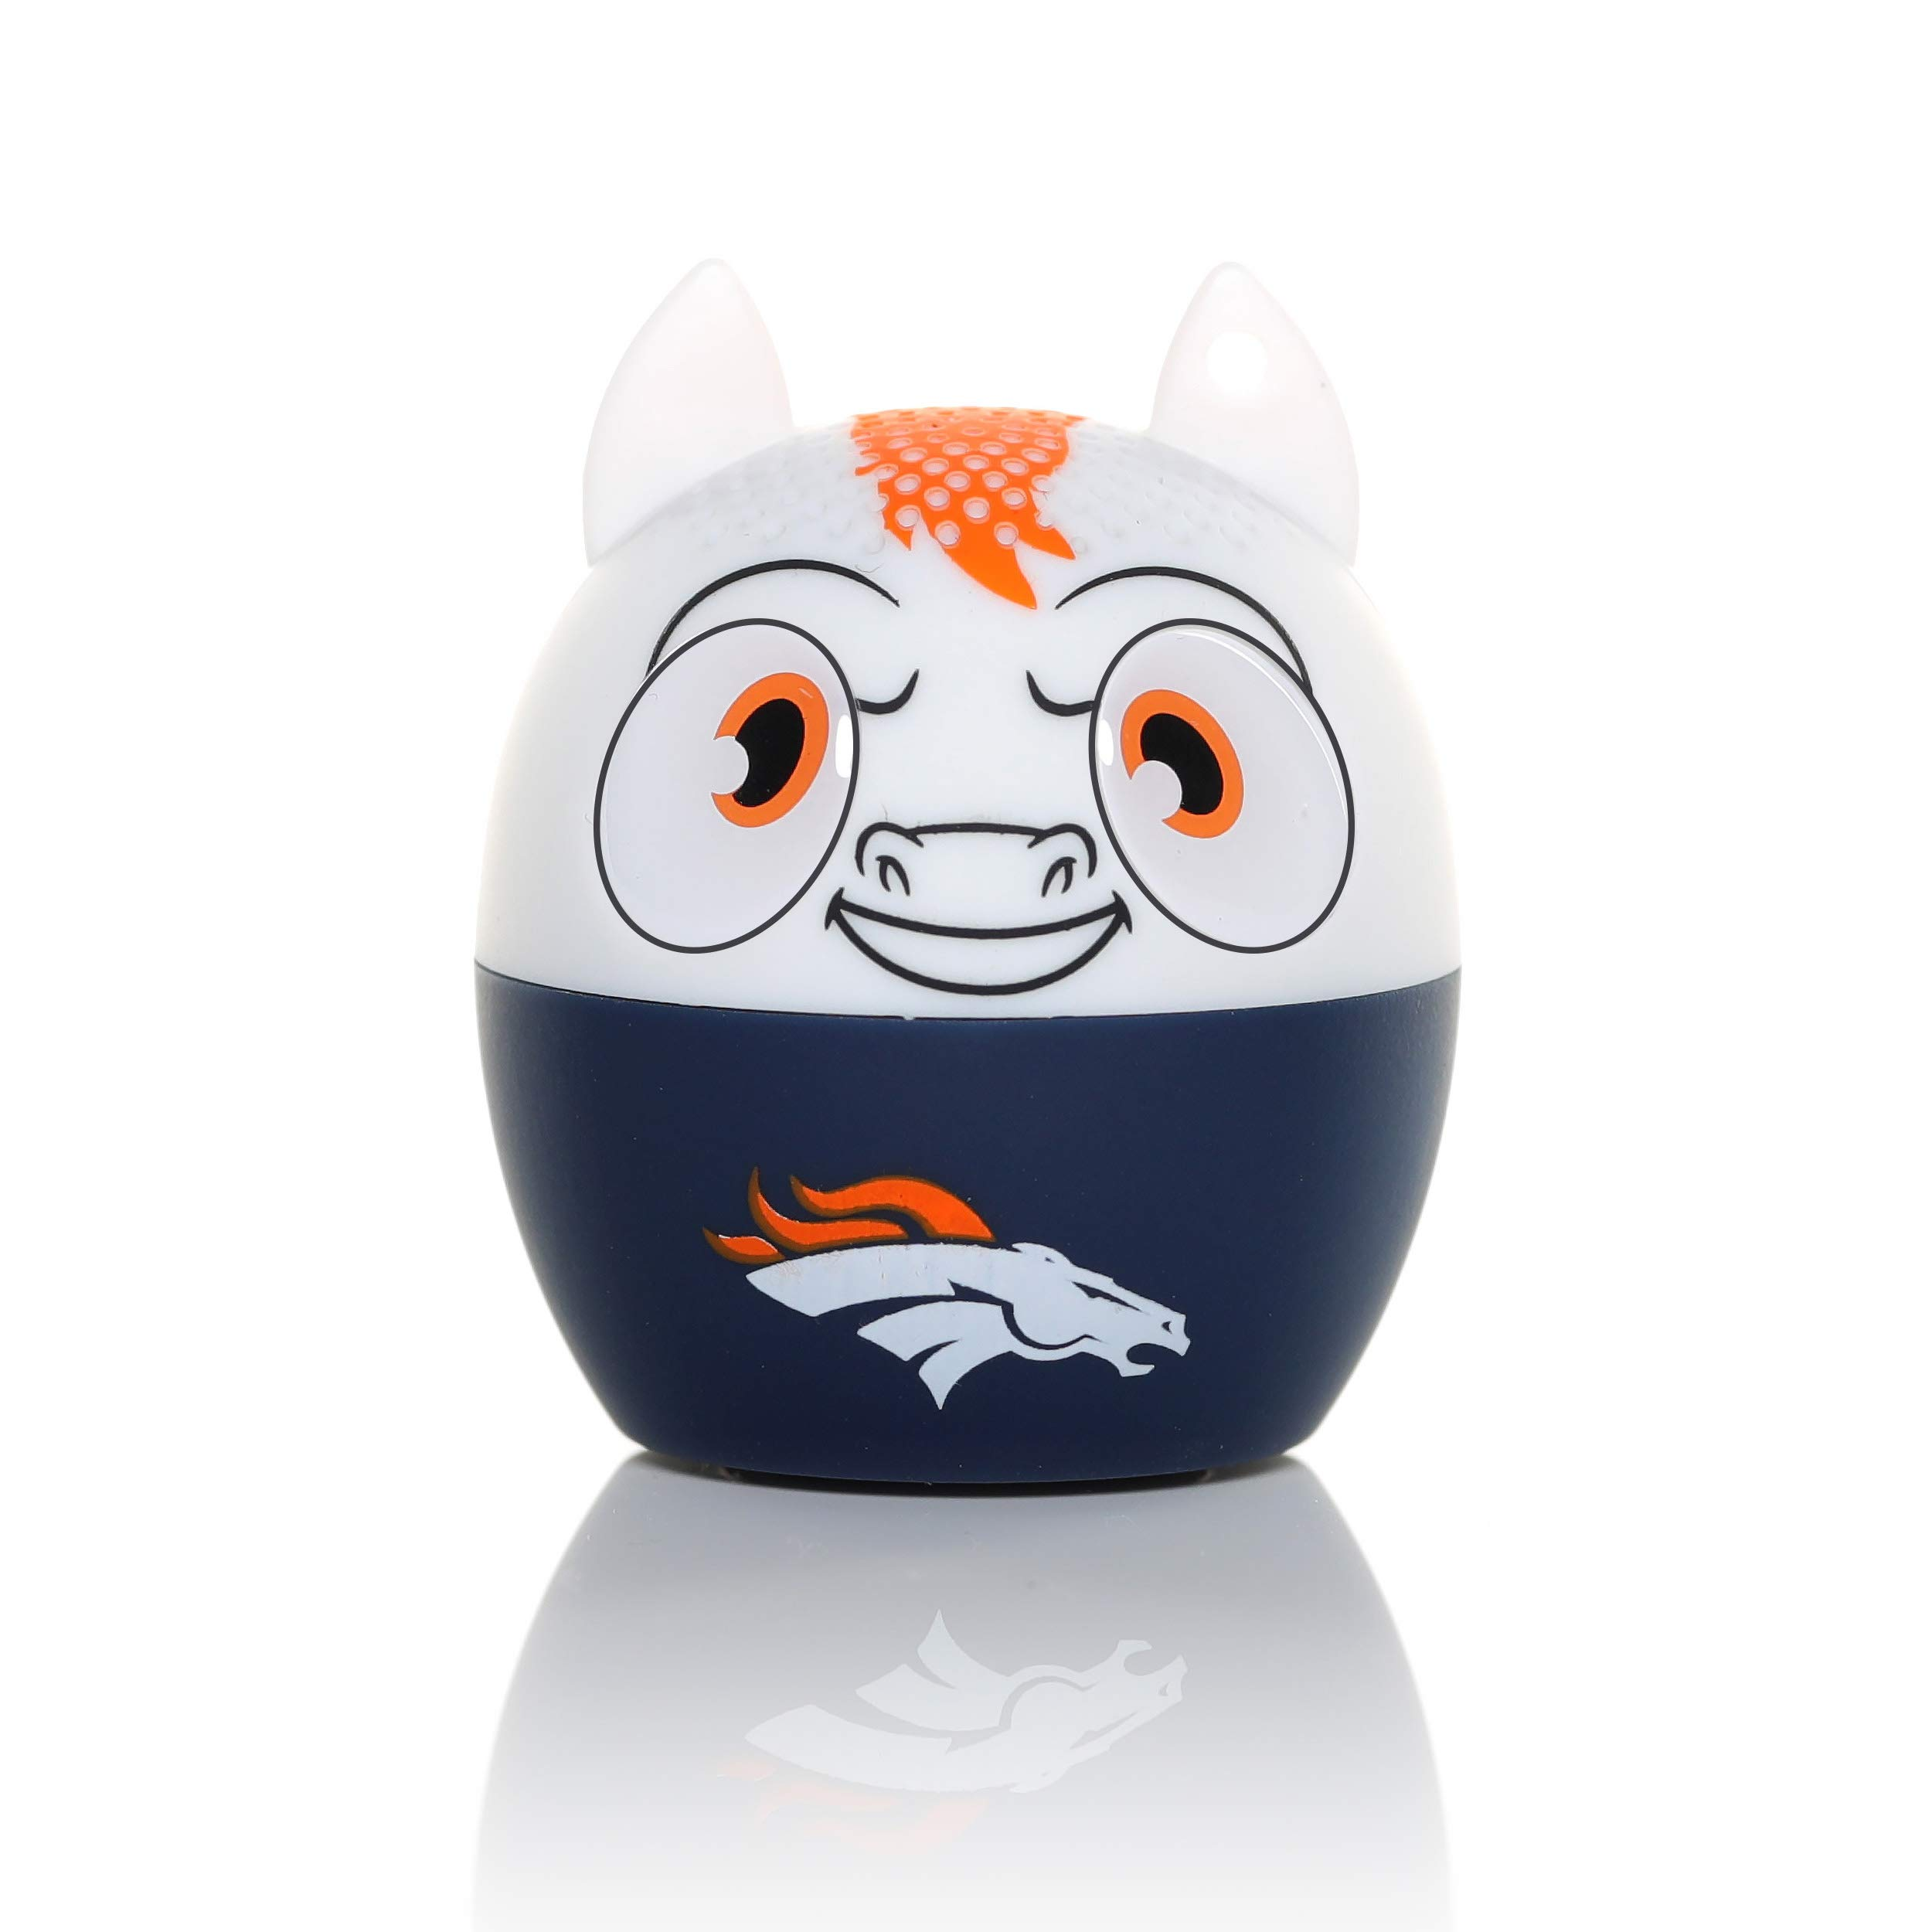 Parlante Bluetooth NFL Denver Broncos Bitty Boomer wireless